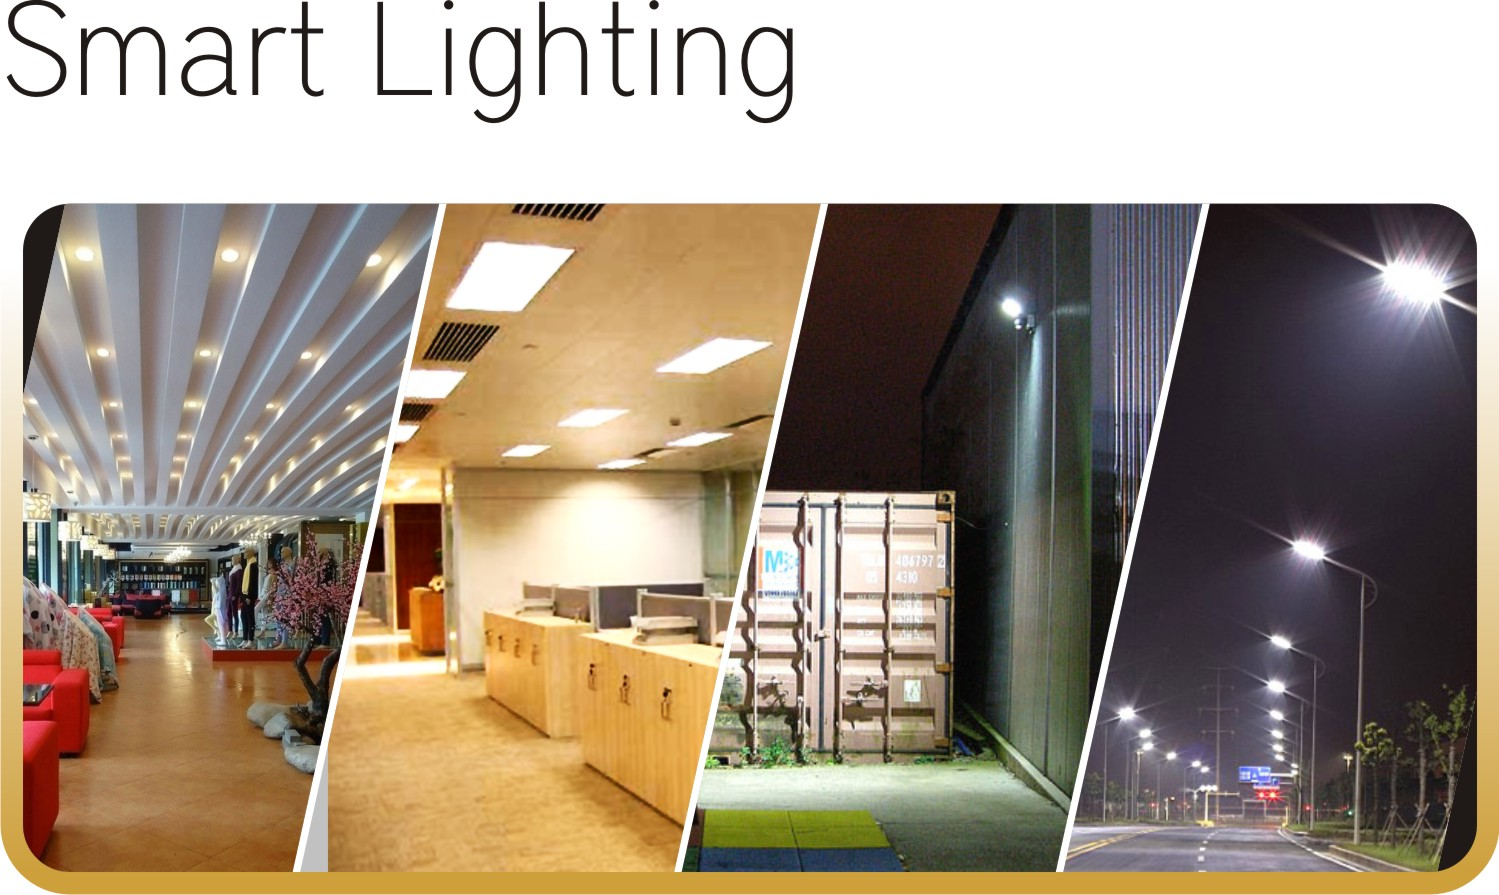 Scientech Smart Lighting